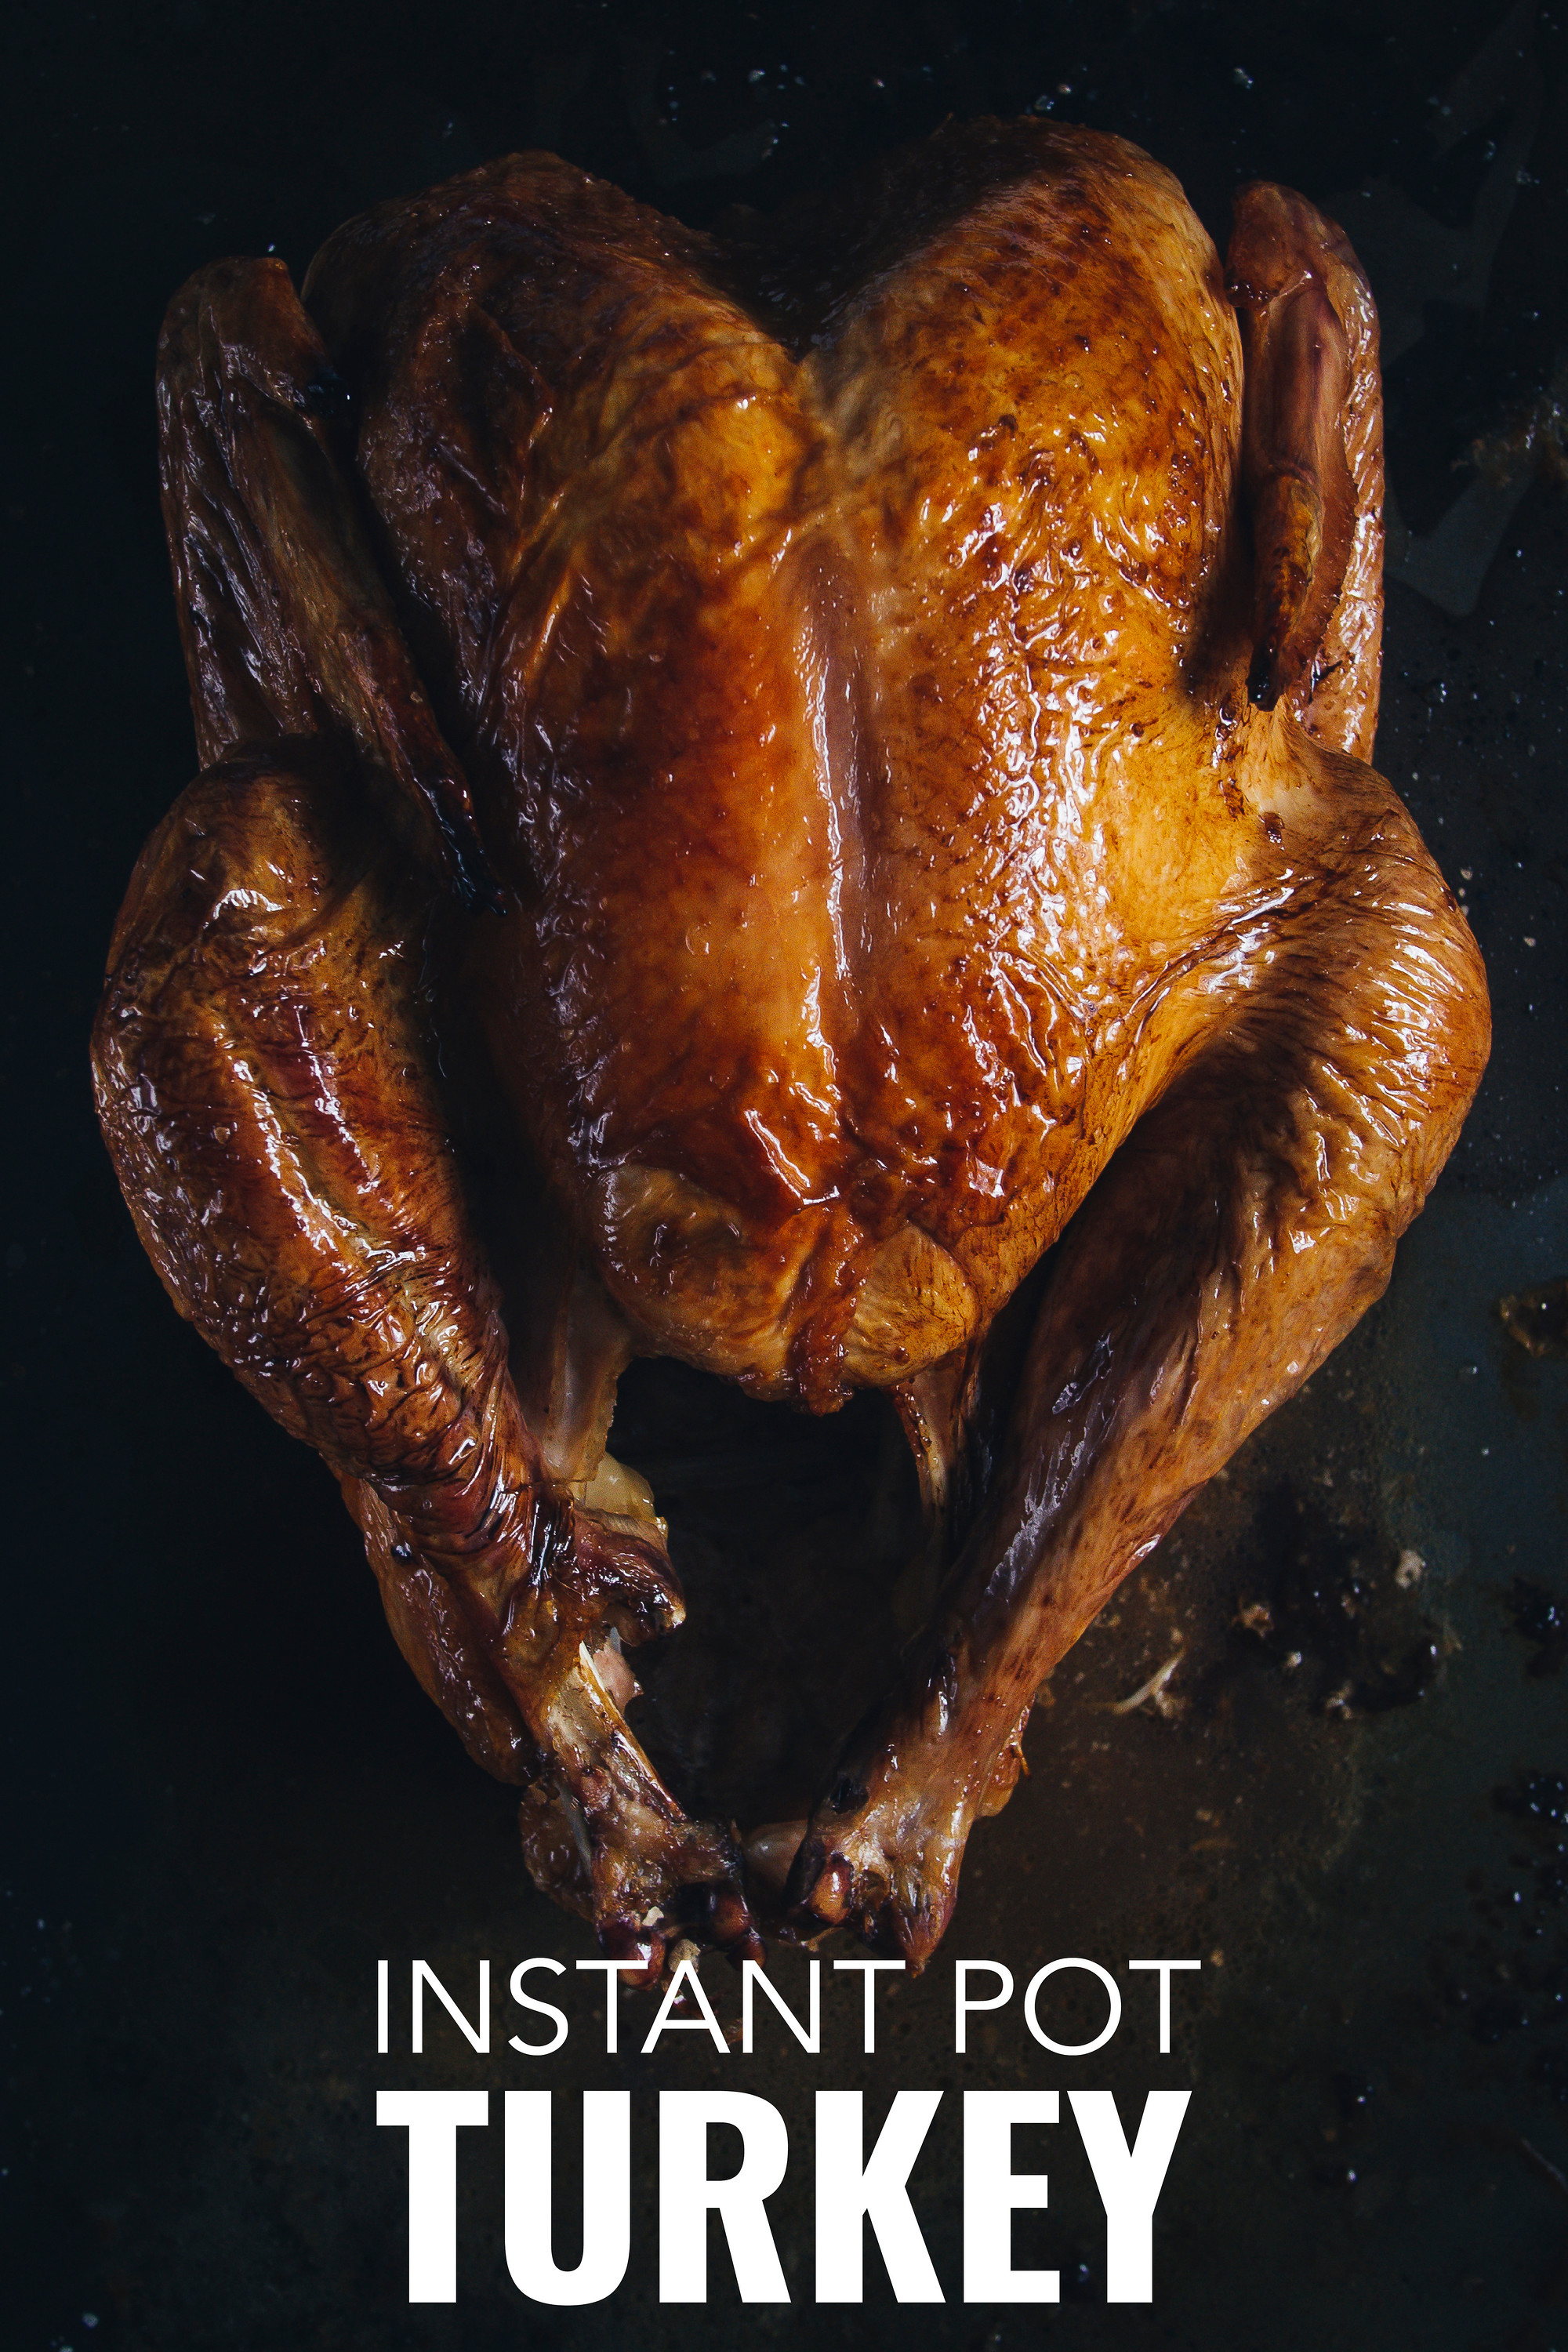 With this Instant Pot turkey recipe it is possible to cook a whole turkey with crispy skin.